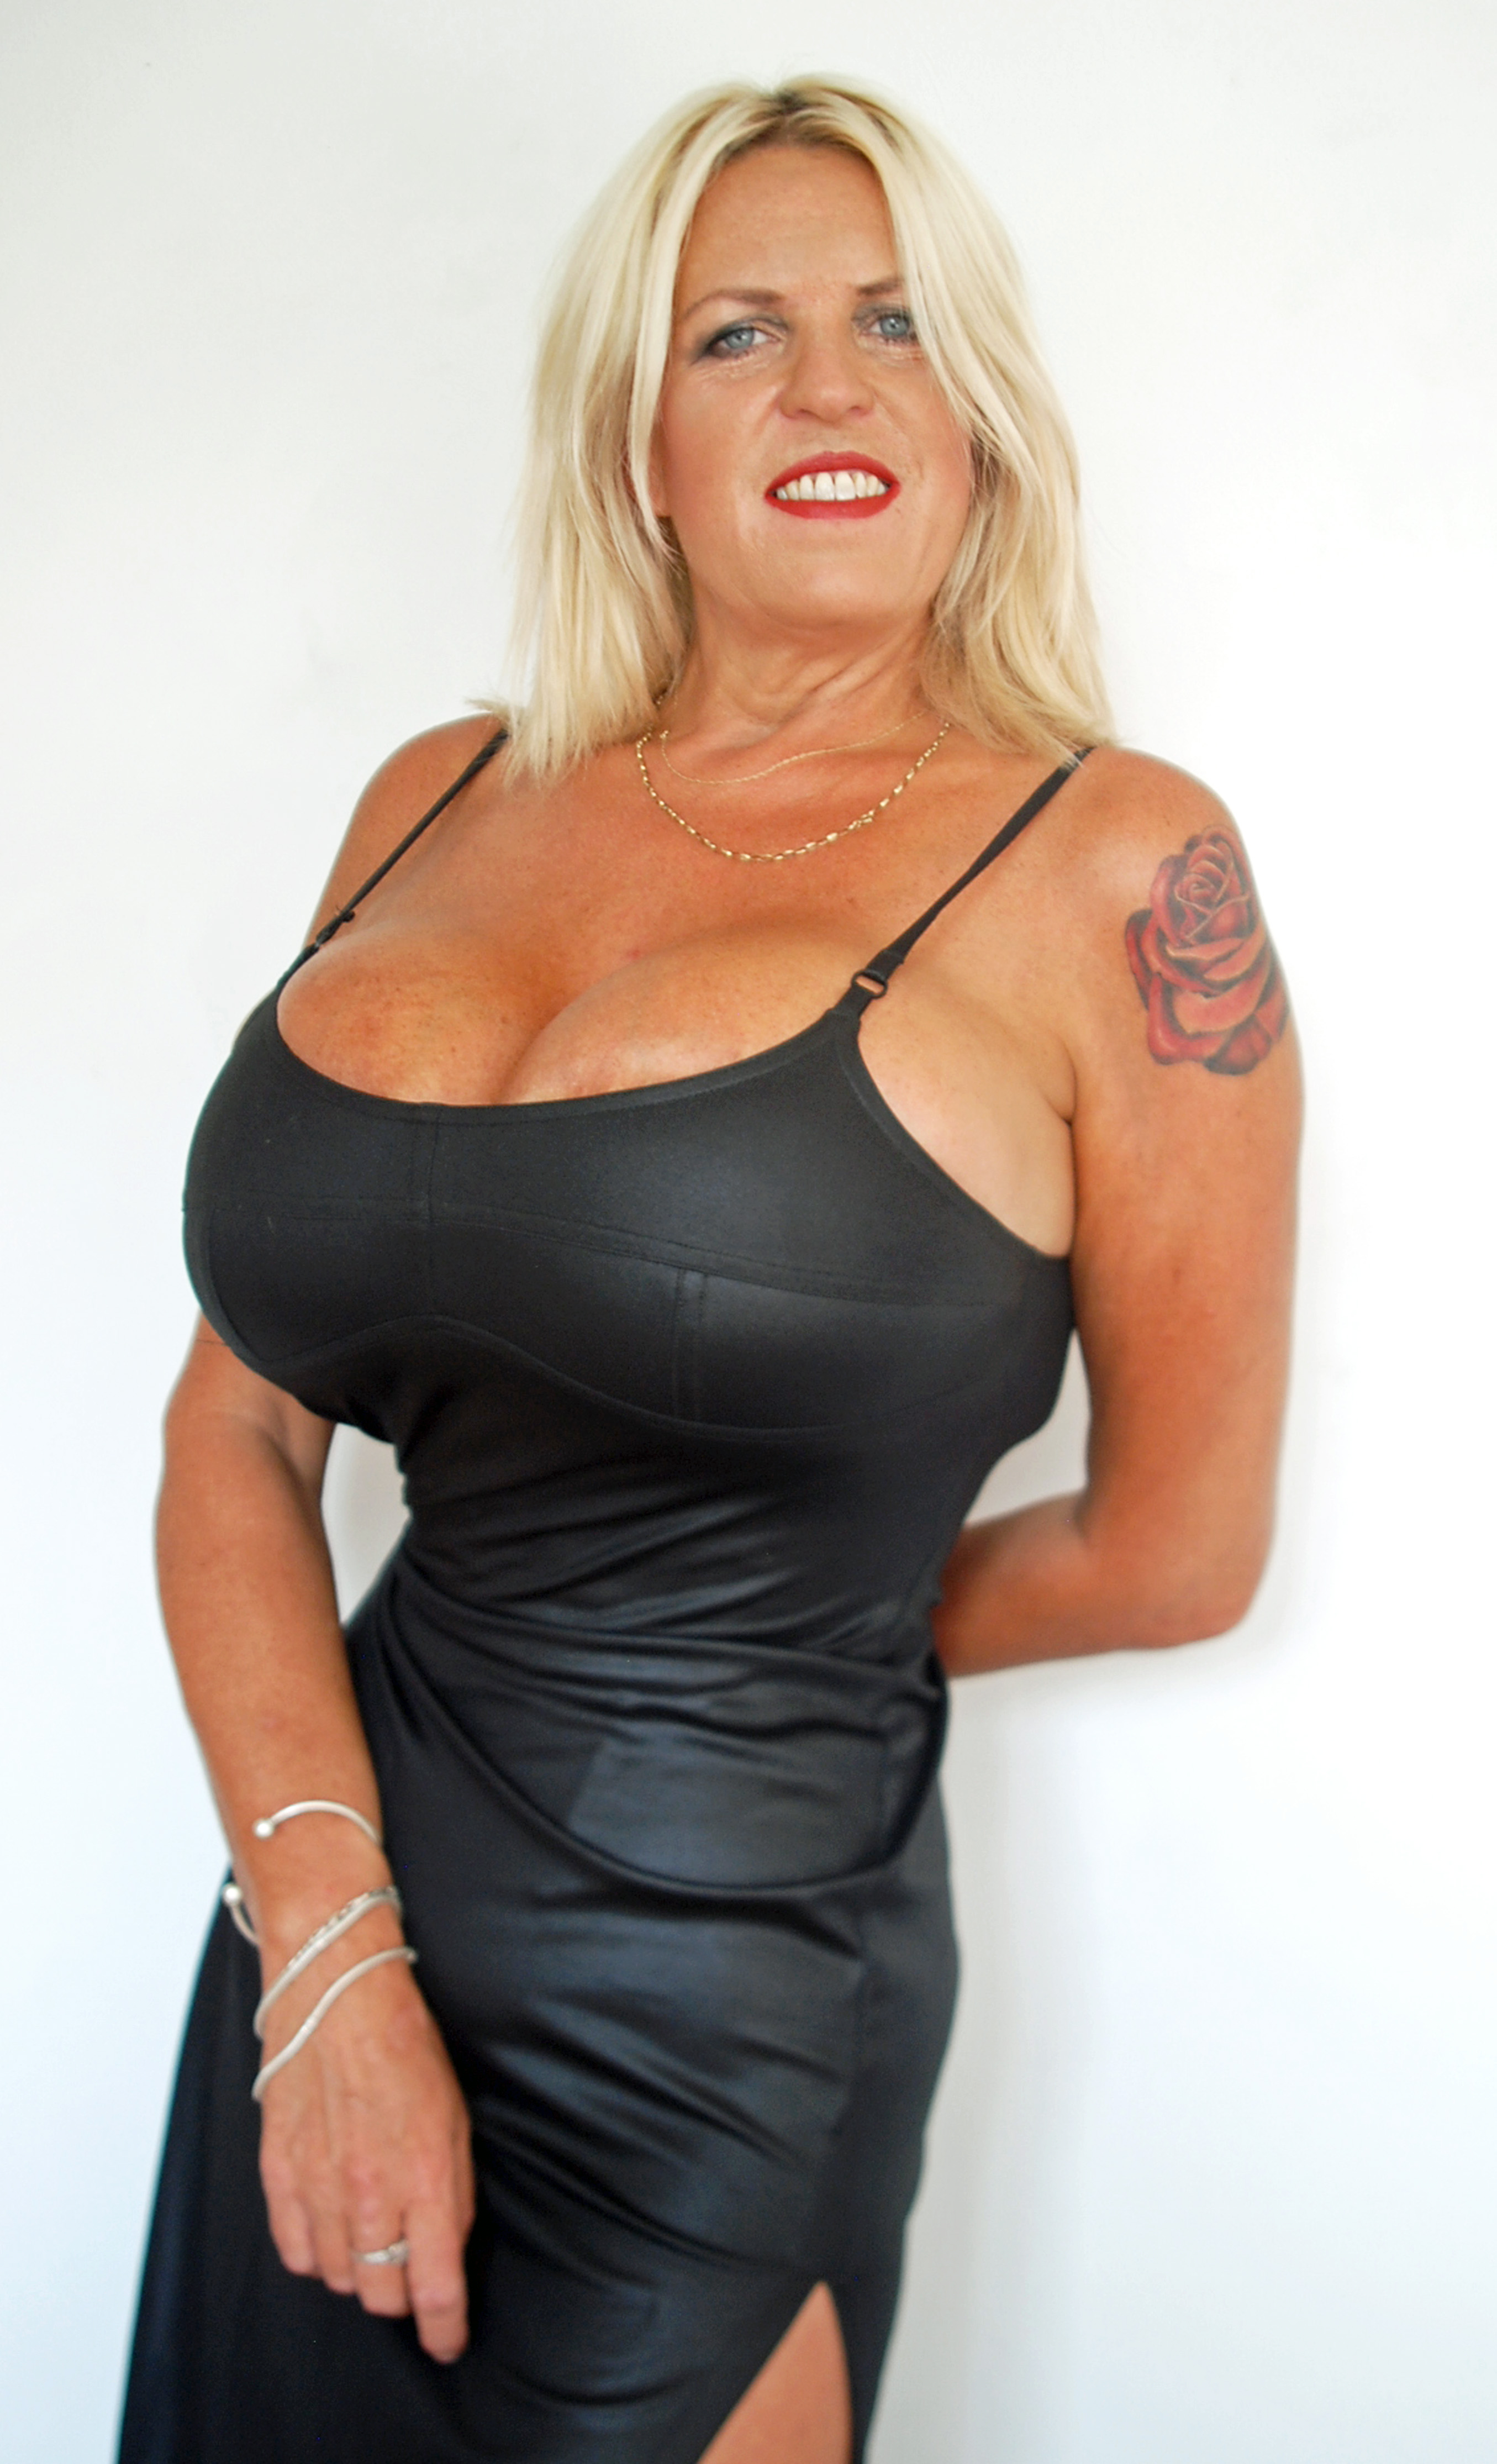 PIC FROM CATERS NEWS - (PICTURED: Sharon Perkins new waist after she began wearing her corset.) - Gran with biggest UK boobs has 24 inch waist after wearing rib crushing corset for 12 hours per day. Sharon Perkins, 50, from Coventry, West Midlands, swapped her 34D breasts for 32MM implants after forking out 10k but that wasnt enough for the body obsessed granny. She now wants a tiny 22inch waist to go with her gigantic assets in time for her September 2017 wedding. Inspired by Jessica Rabbit, Sharon is often seen wearing a tight red long dress, push up bras and a corset to enhance her figure. After spending a huge chunk of divorce cash on the half-a-stone implants, which needed to be specially imported from the US, the mum-of-three has also lost three stone in three months.Sharon insists her fianc, Carl Hamilton, 50, cant get enough of her body and says its brought the pair closer together. SEE CATERS COPY.